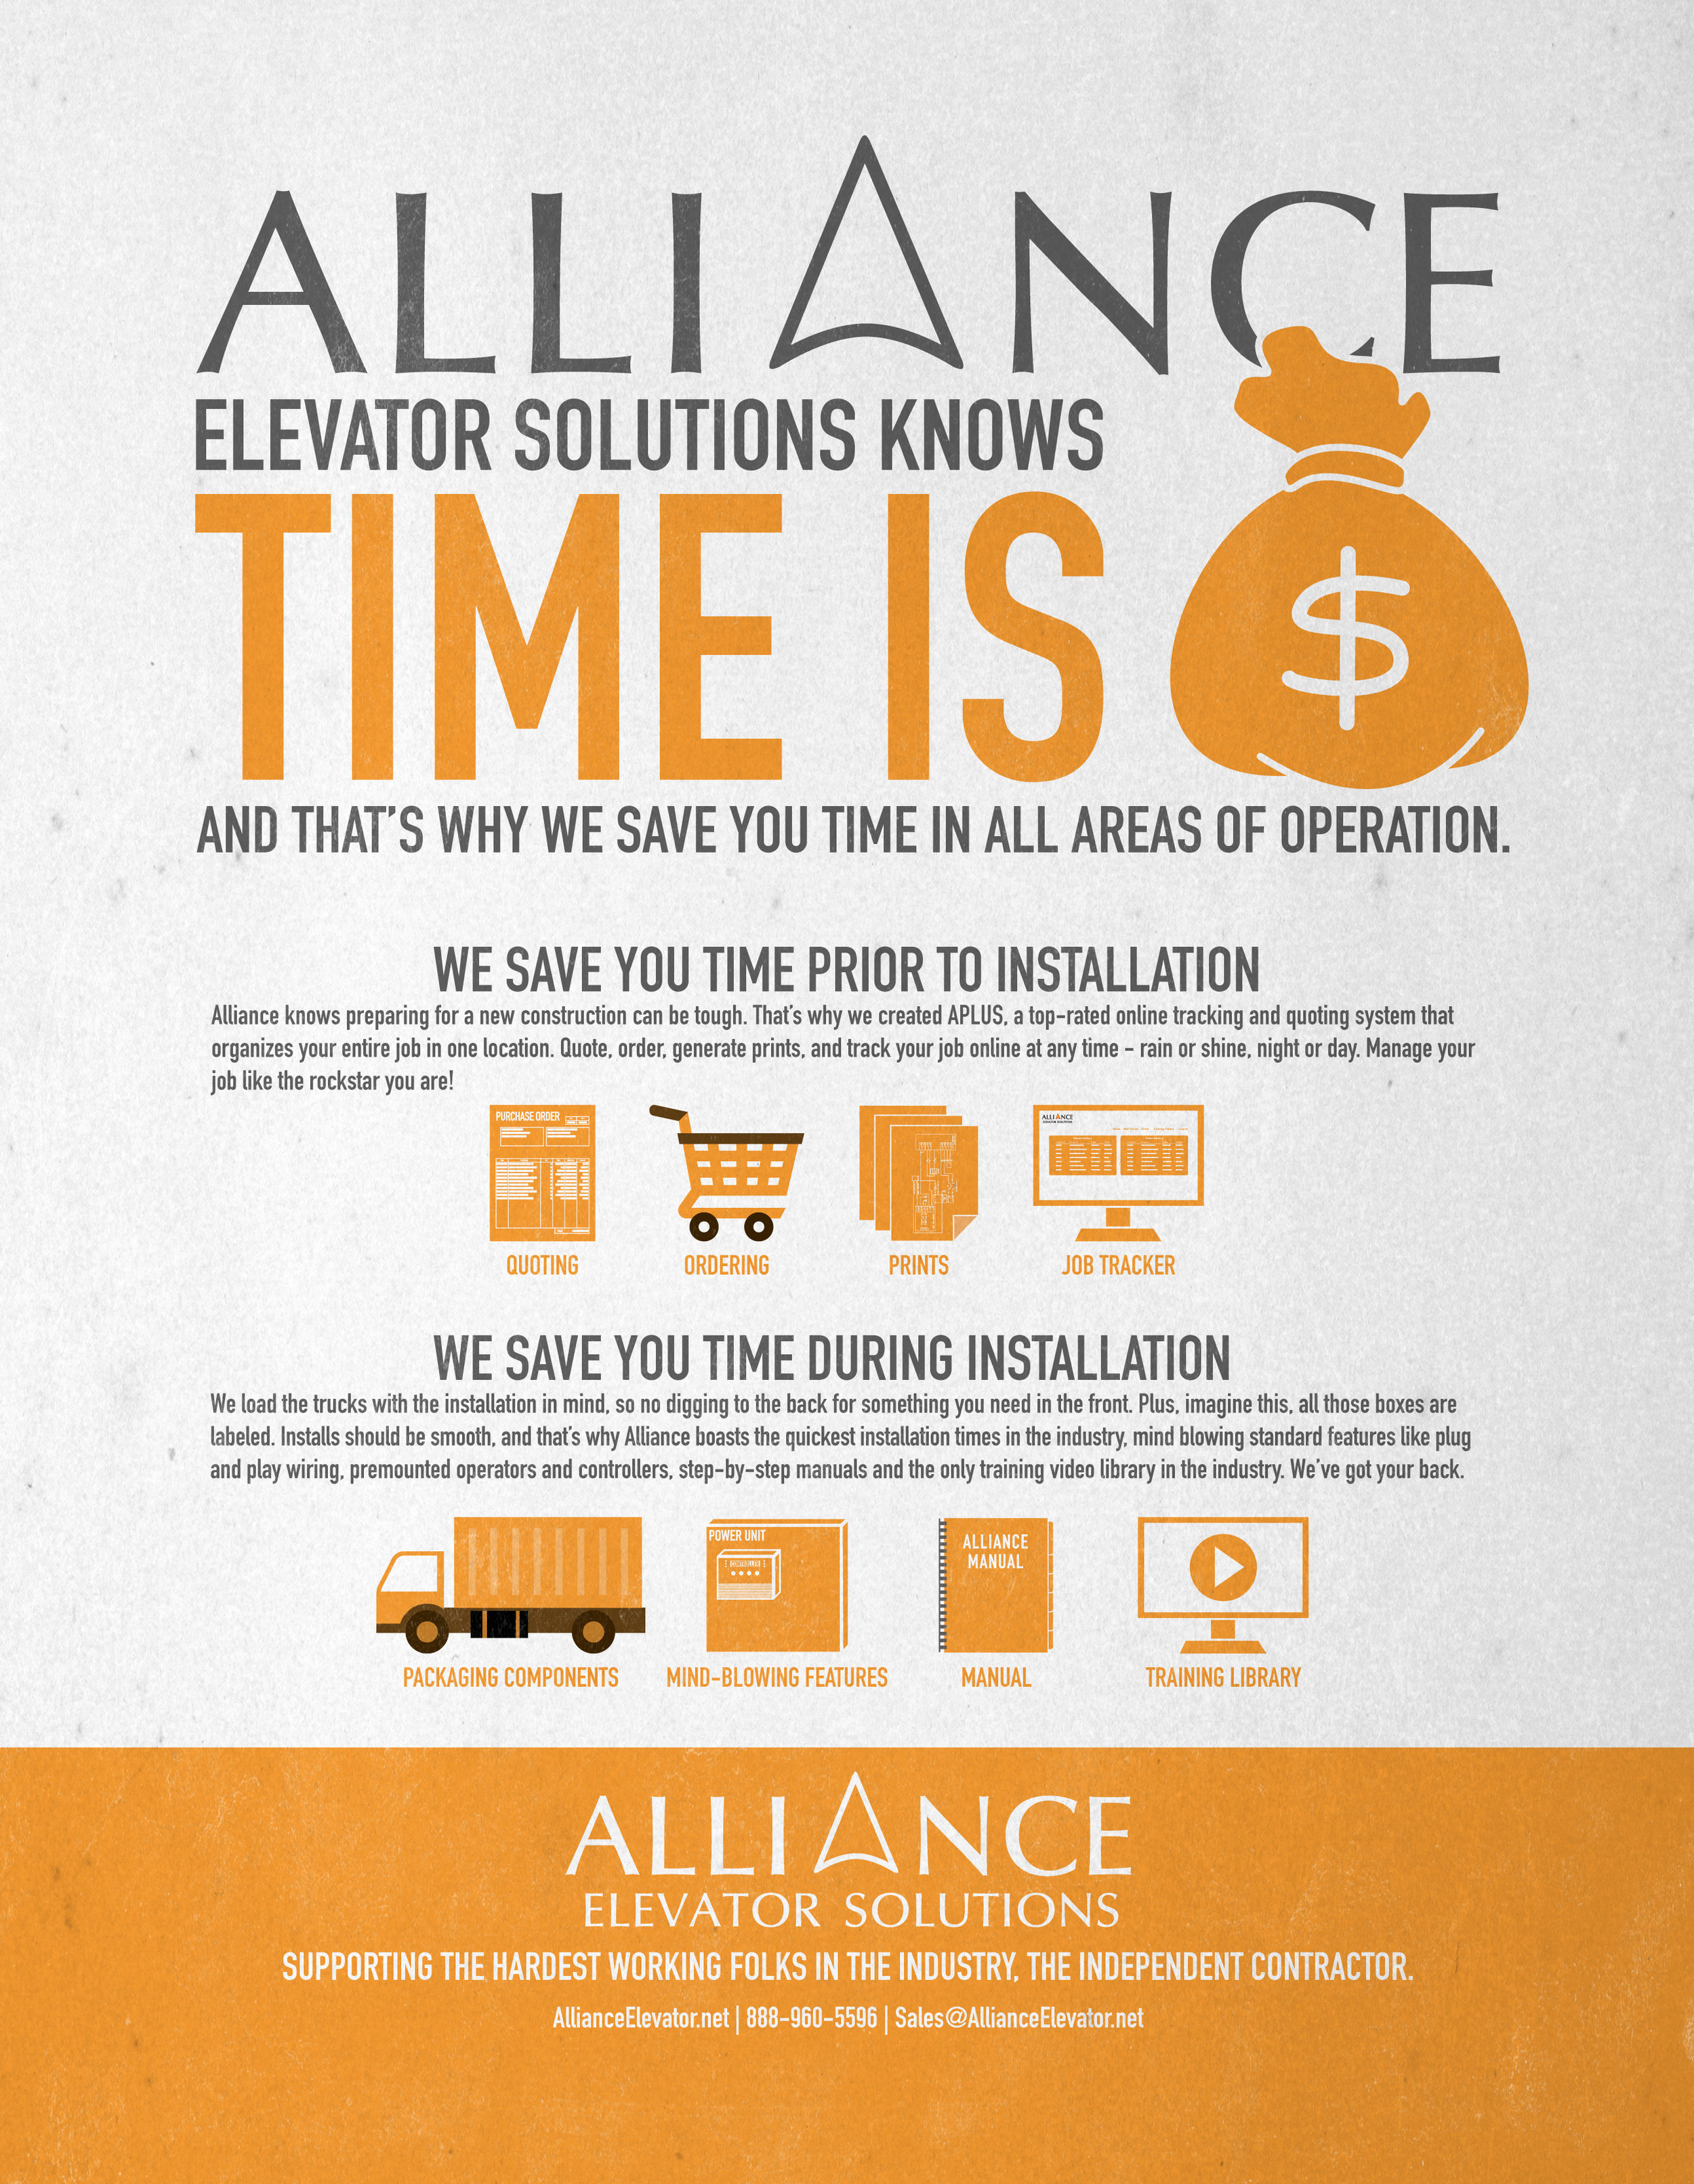 © ProArts Media - Alliance Elevator Solutions - 2 Time.jpg